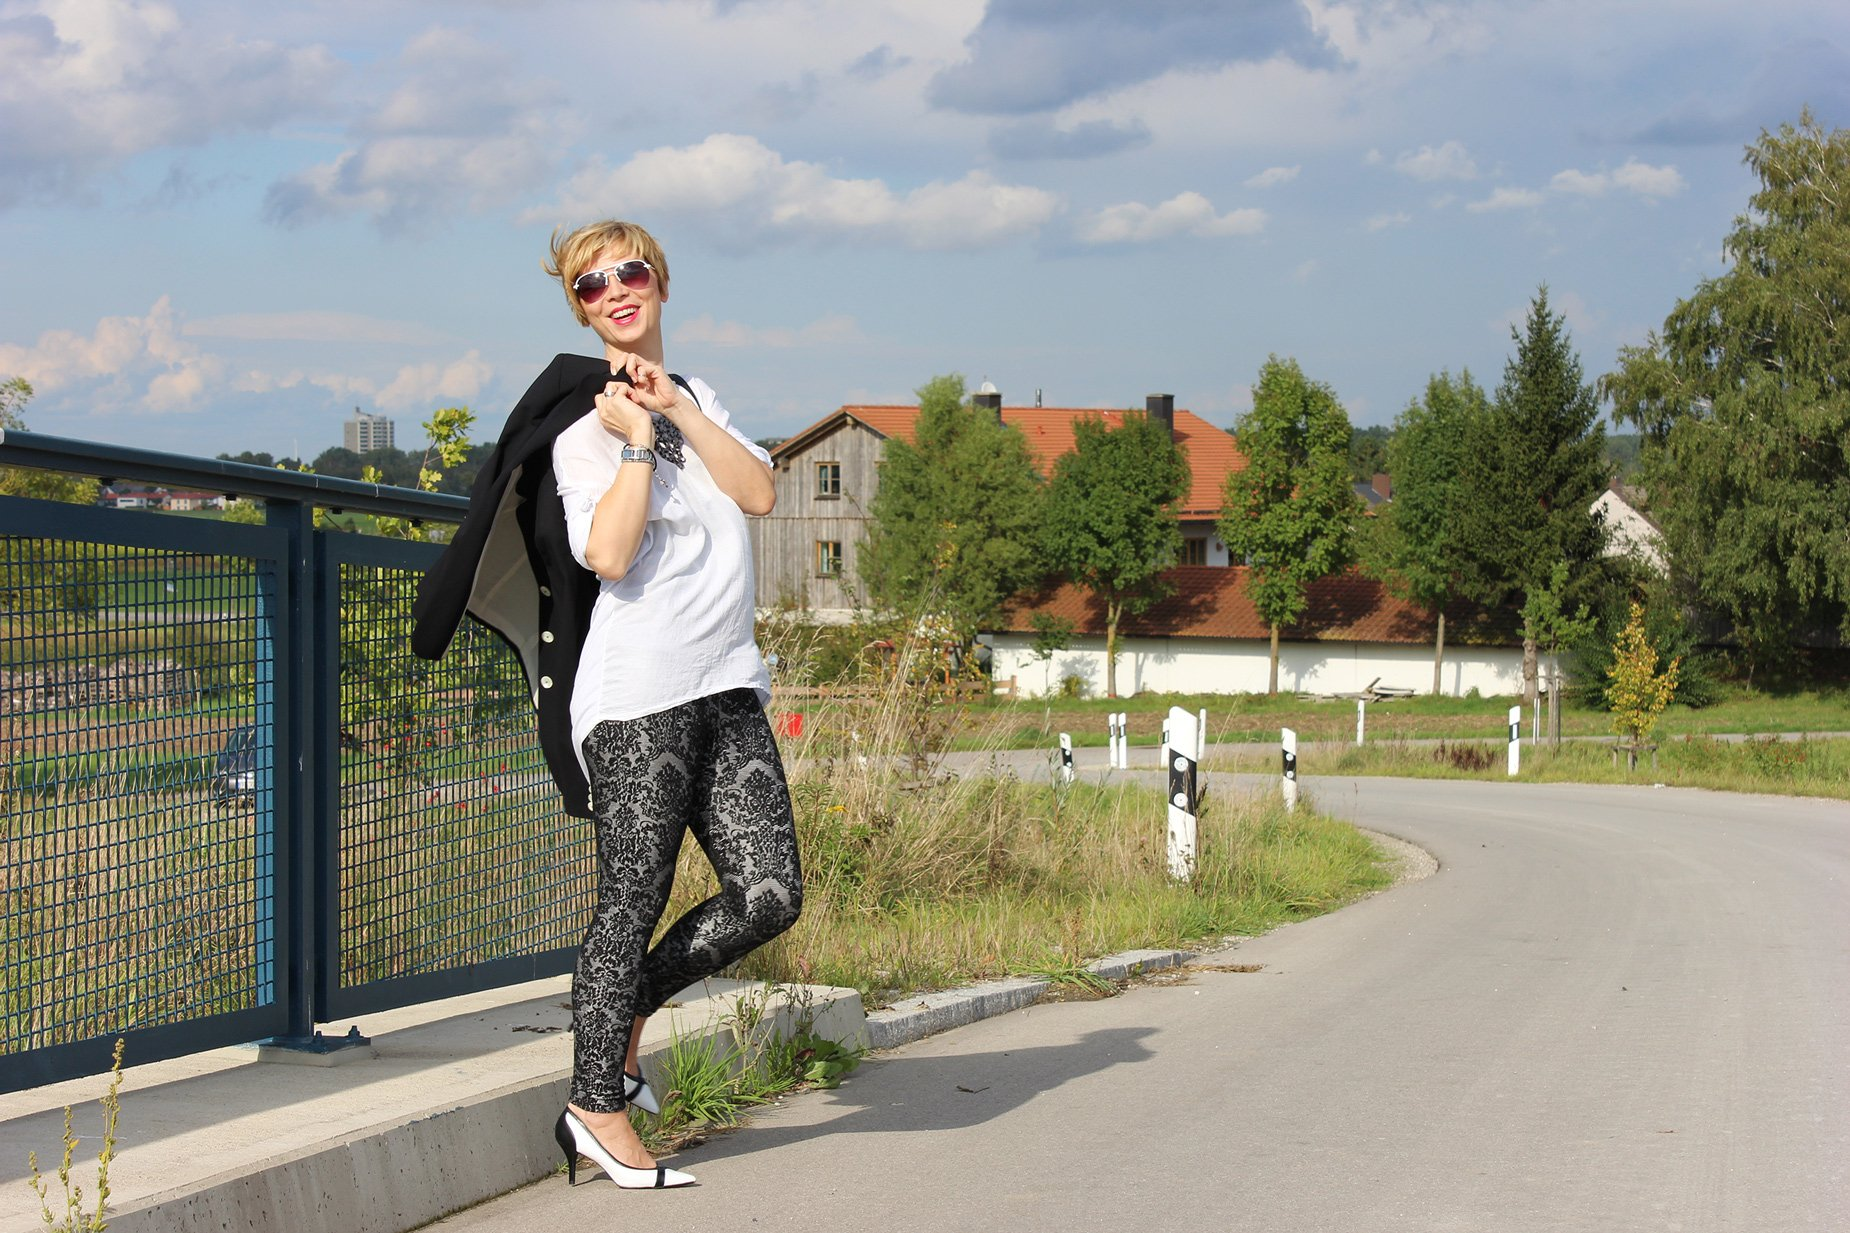 IMG_1617a_Only_blackandwhite_Legging_pumps_Deichmann